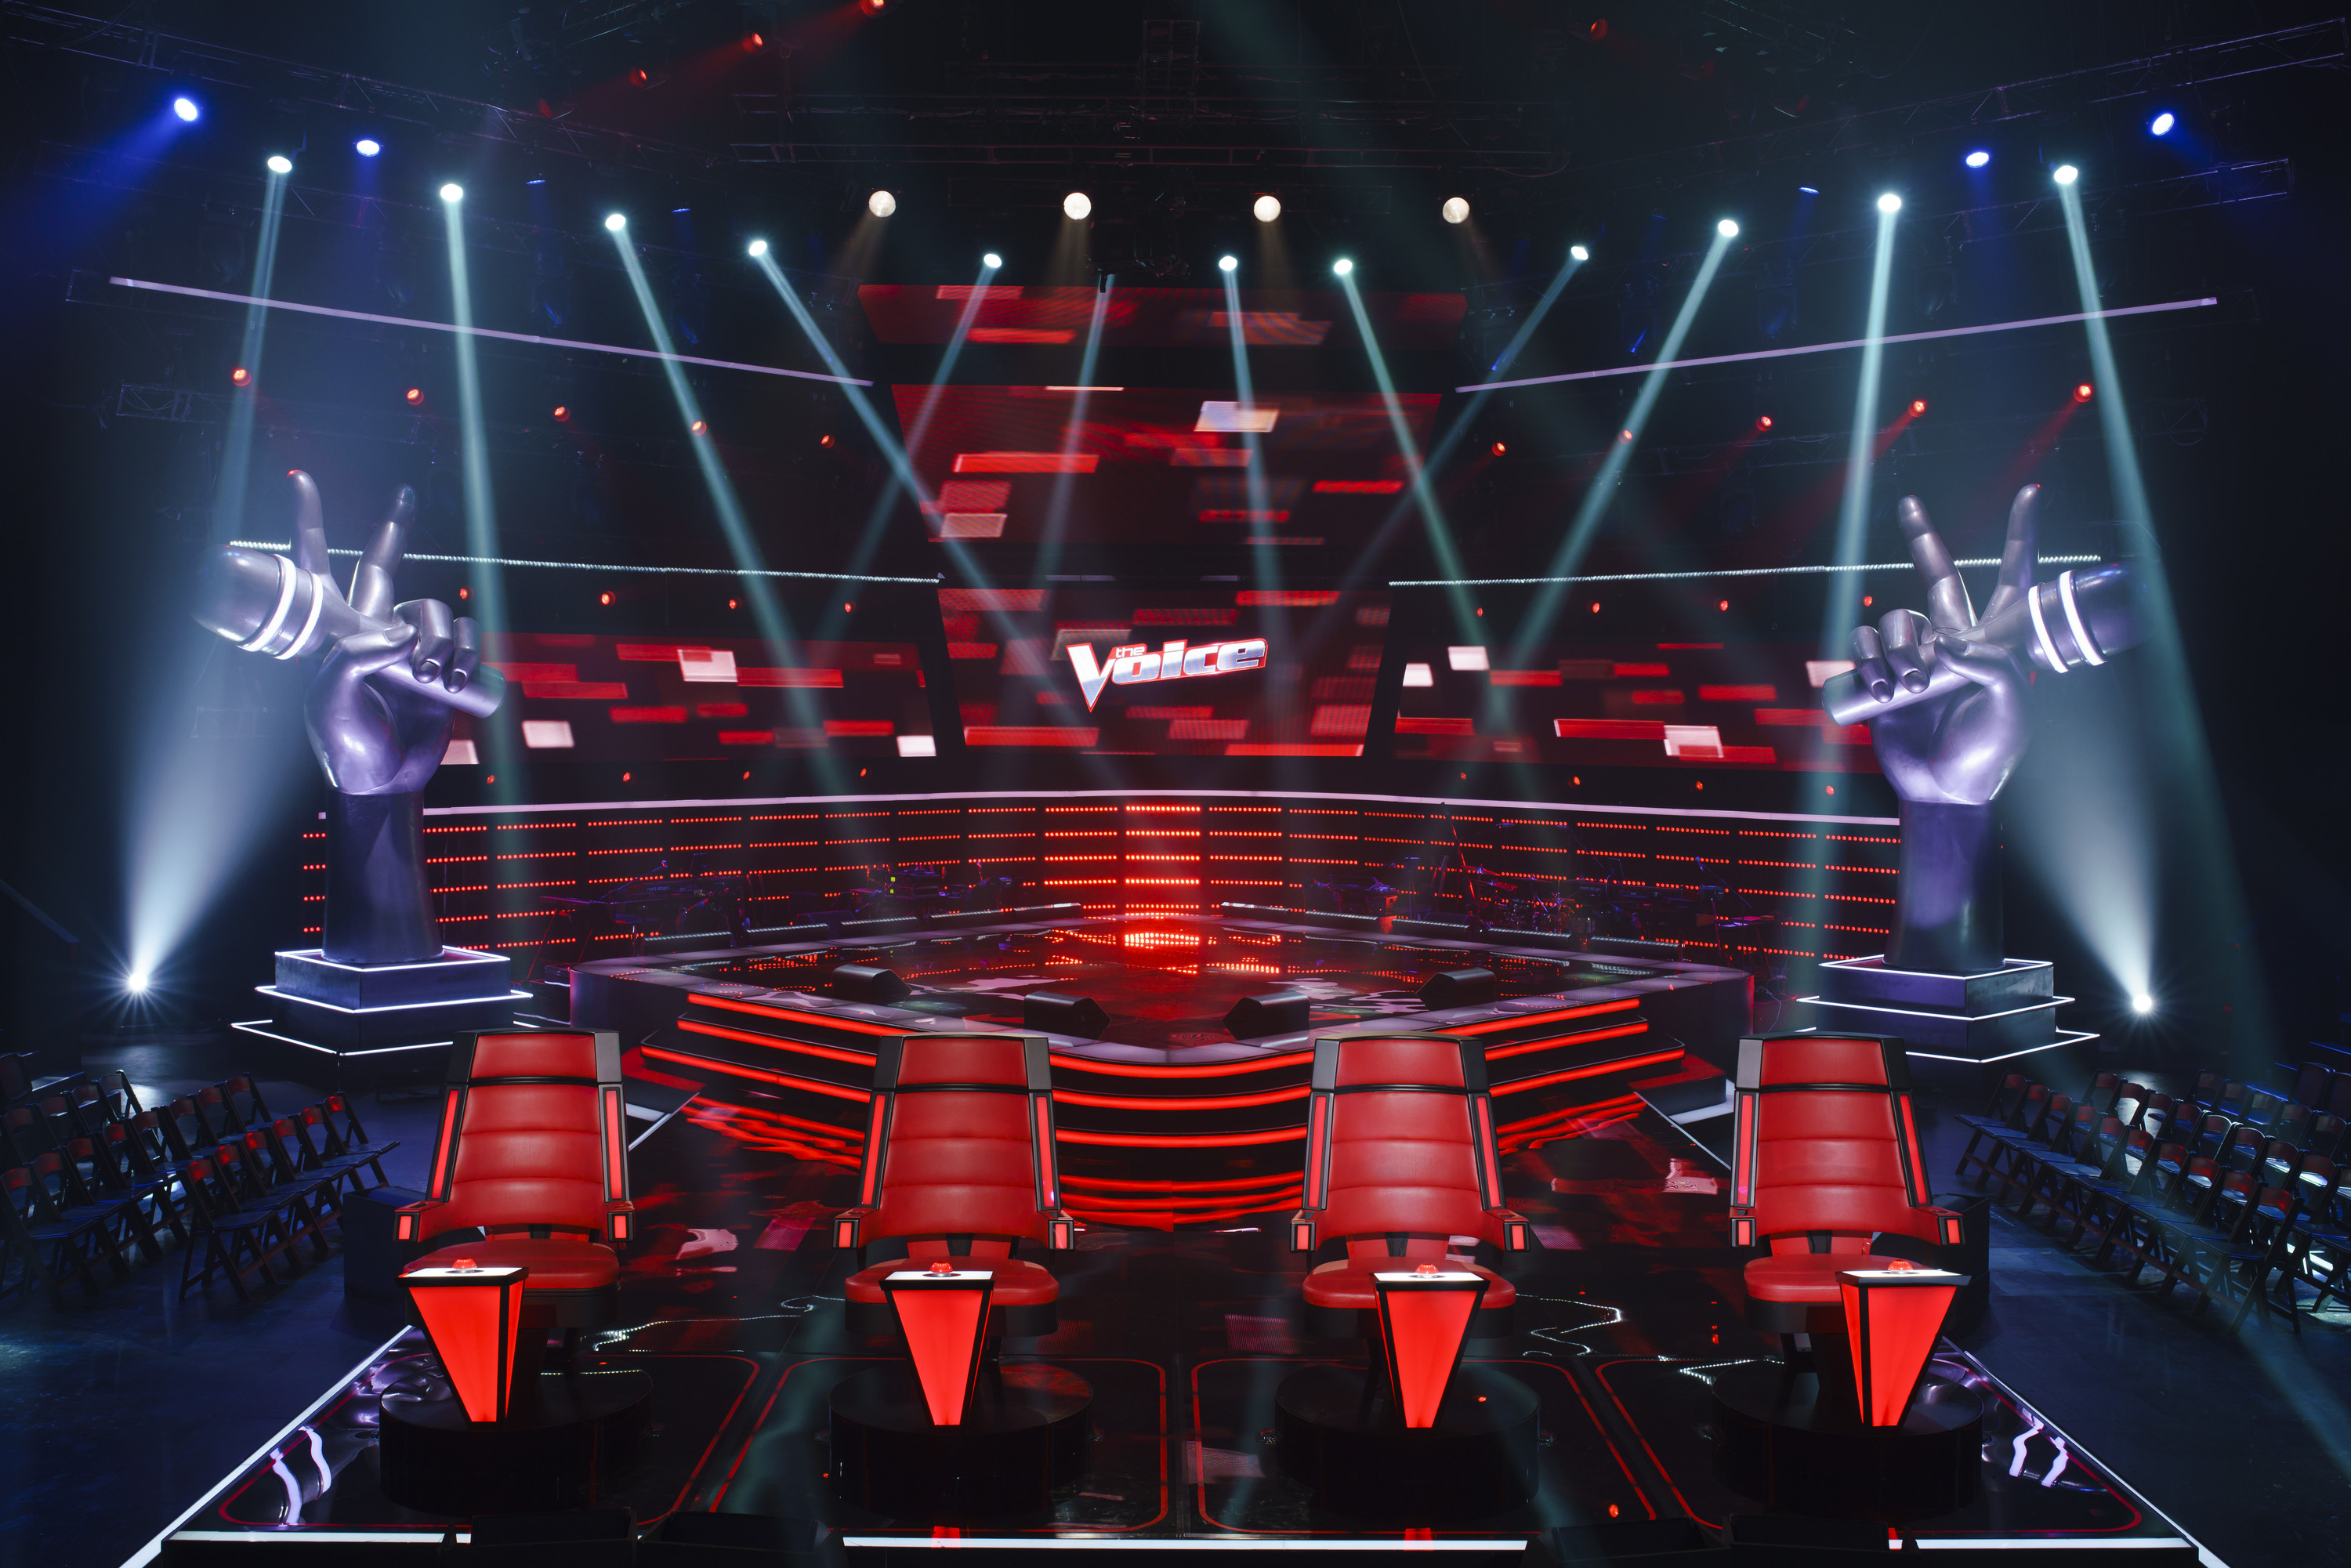 The Voice Australia stage and lighting.